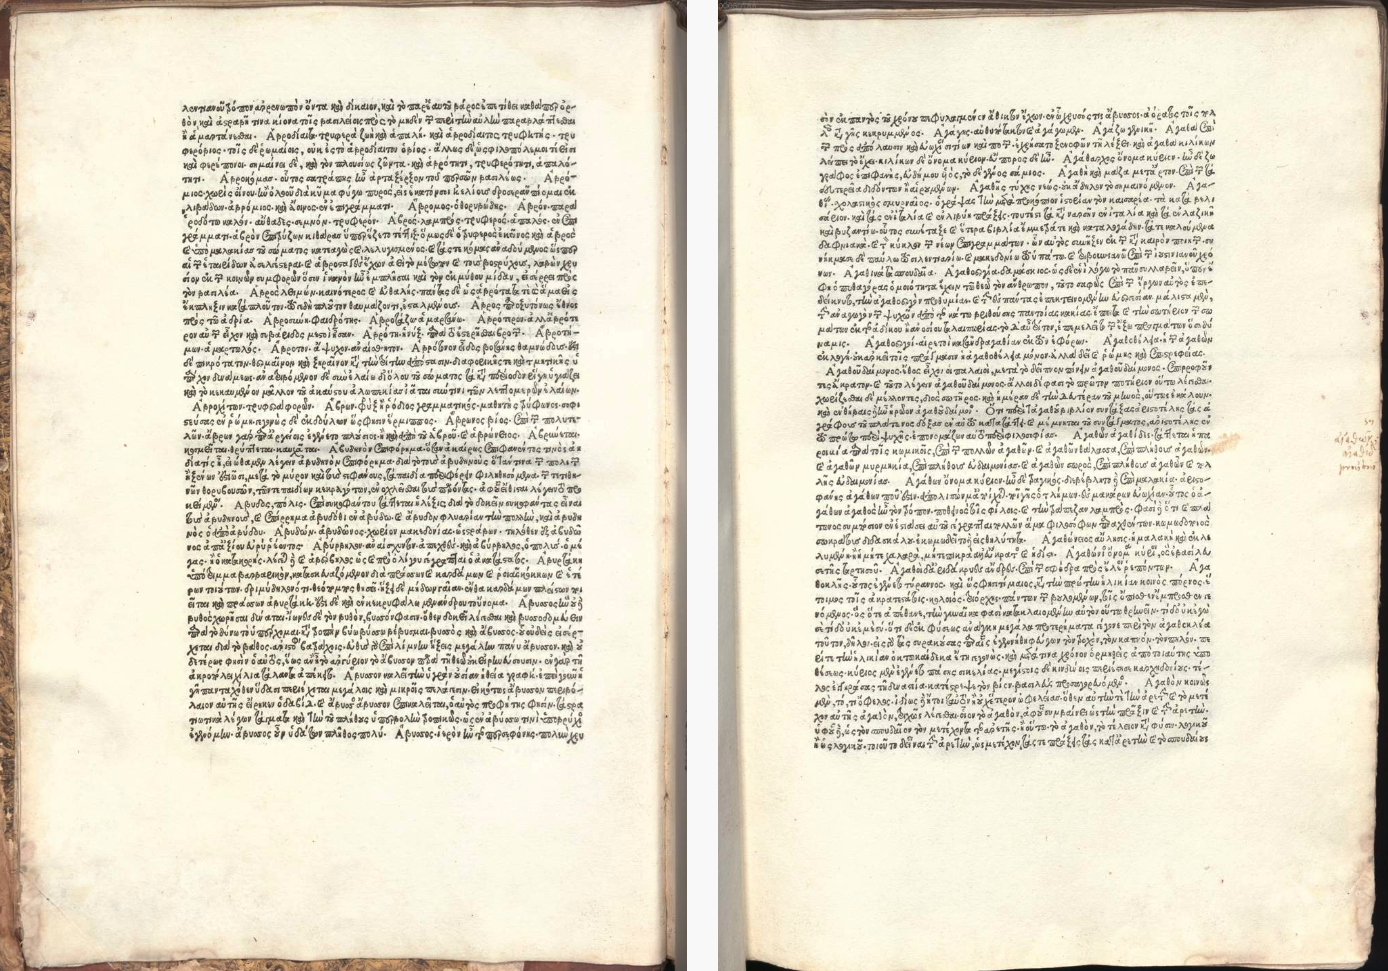 First printed edition of the Suda (1499). This was the largest work printed in Greek during the 15th century. Bayerische Staatsbibliothek.